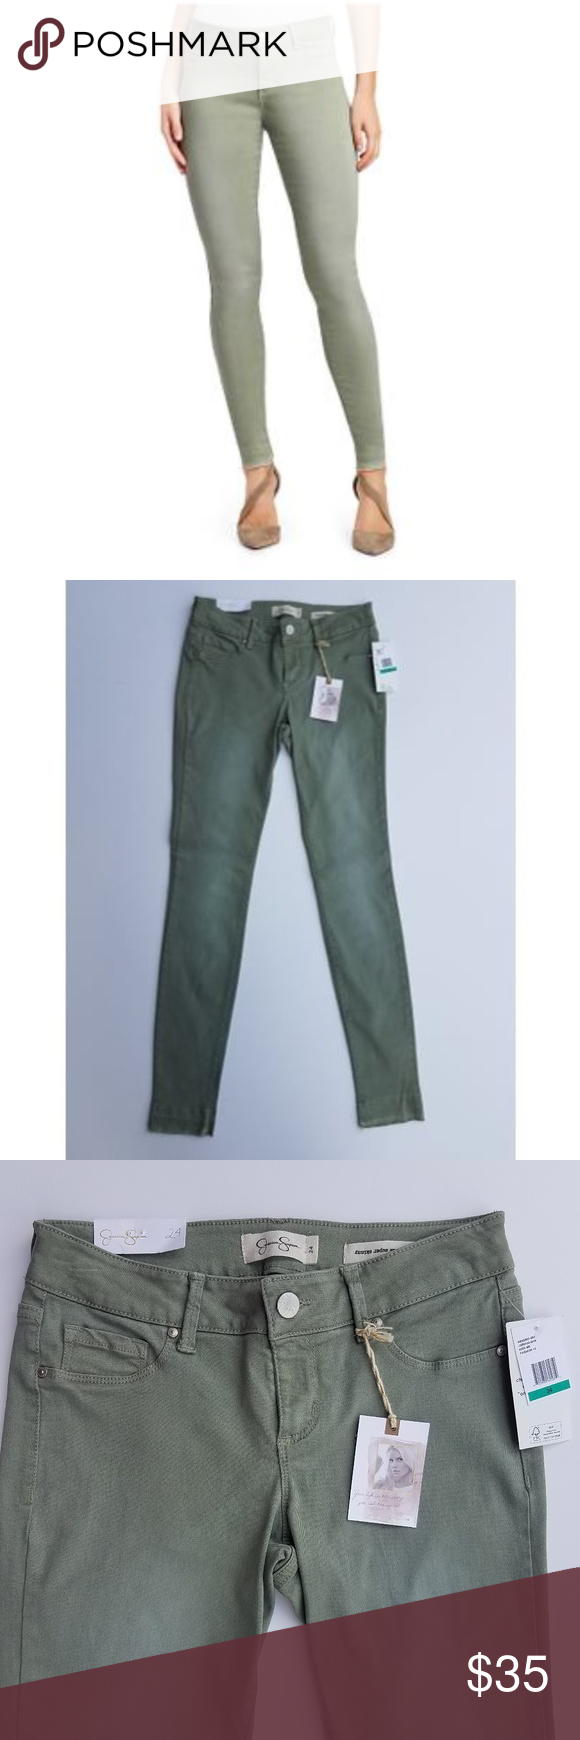 Nwt Jessica Simpson Released Hem Pant How To Hem Pants Pants Jessica Simpson Jeans